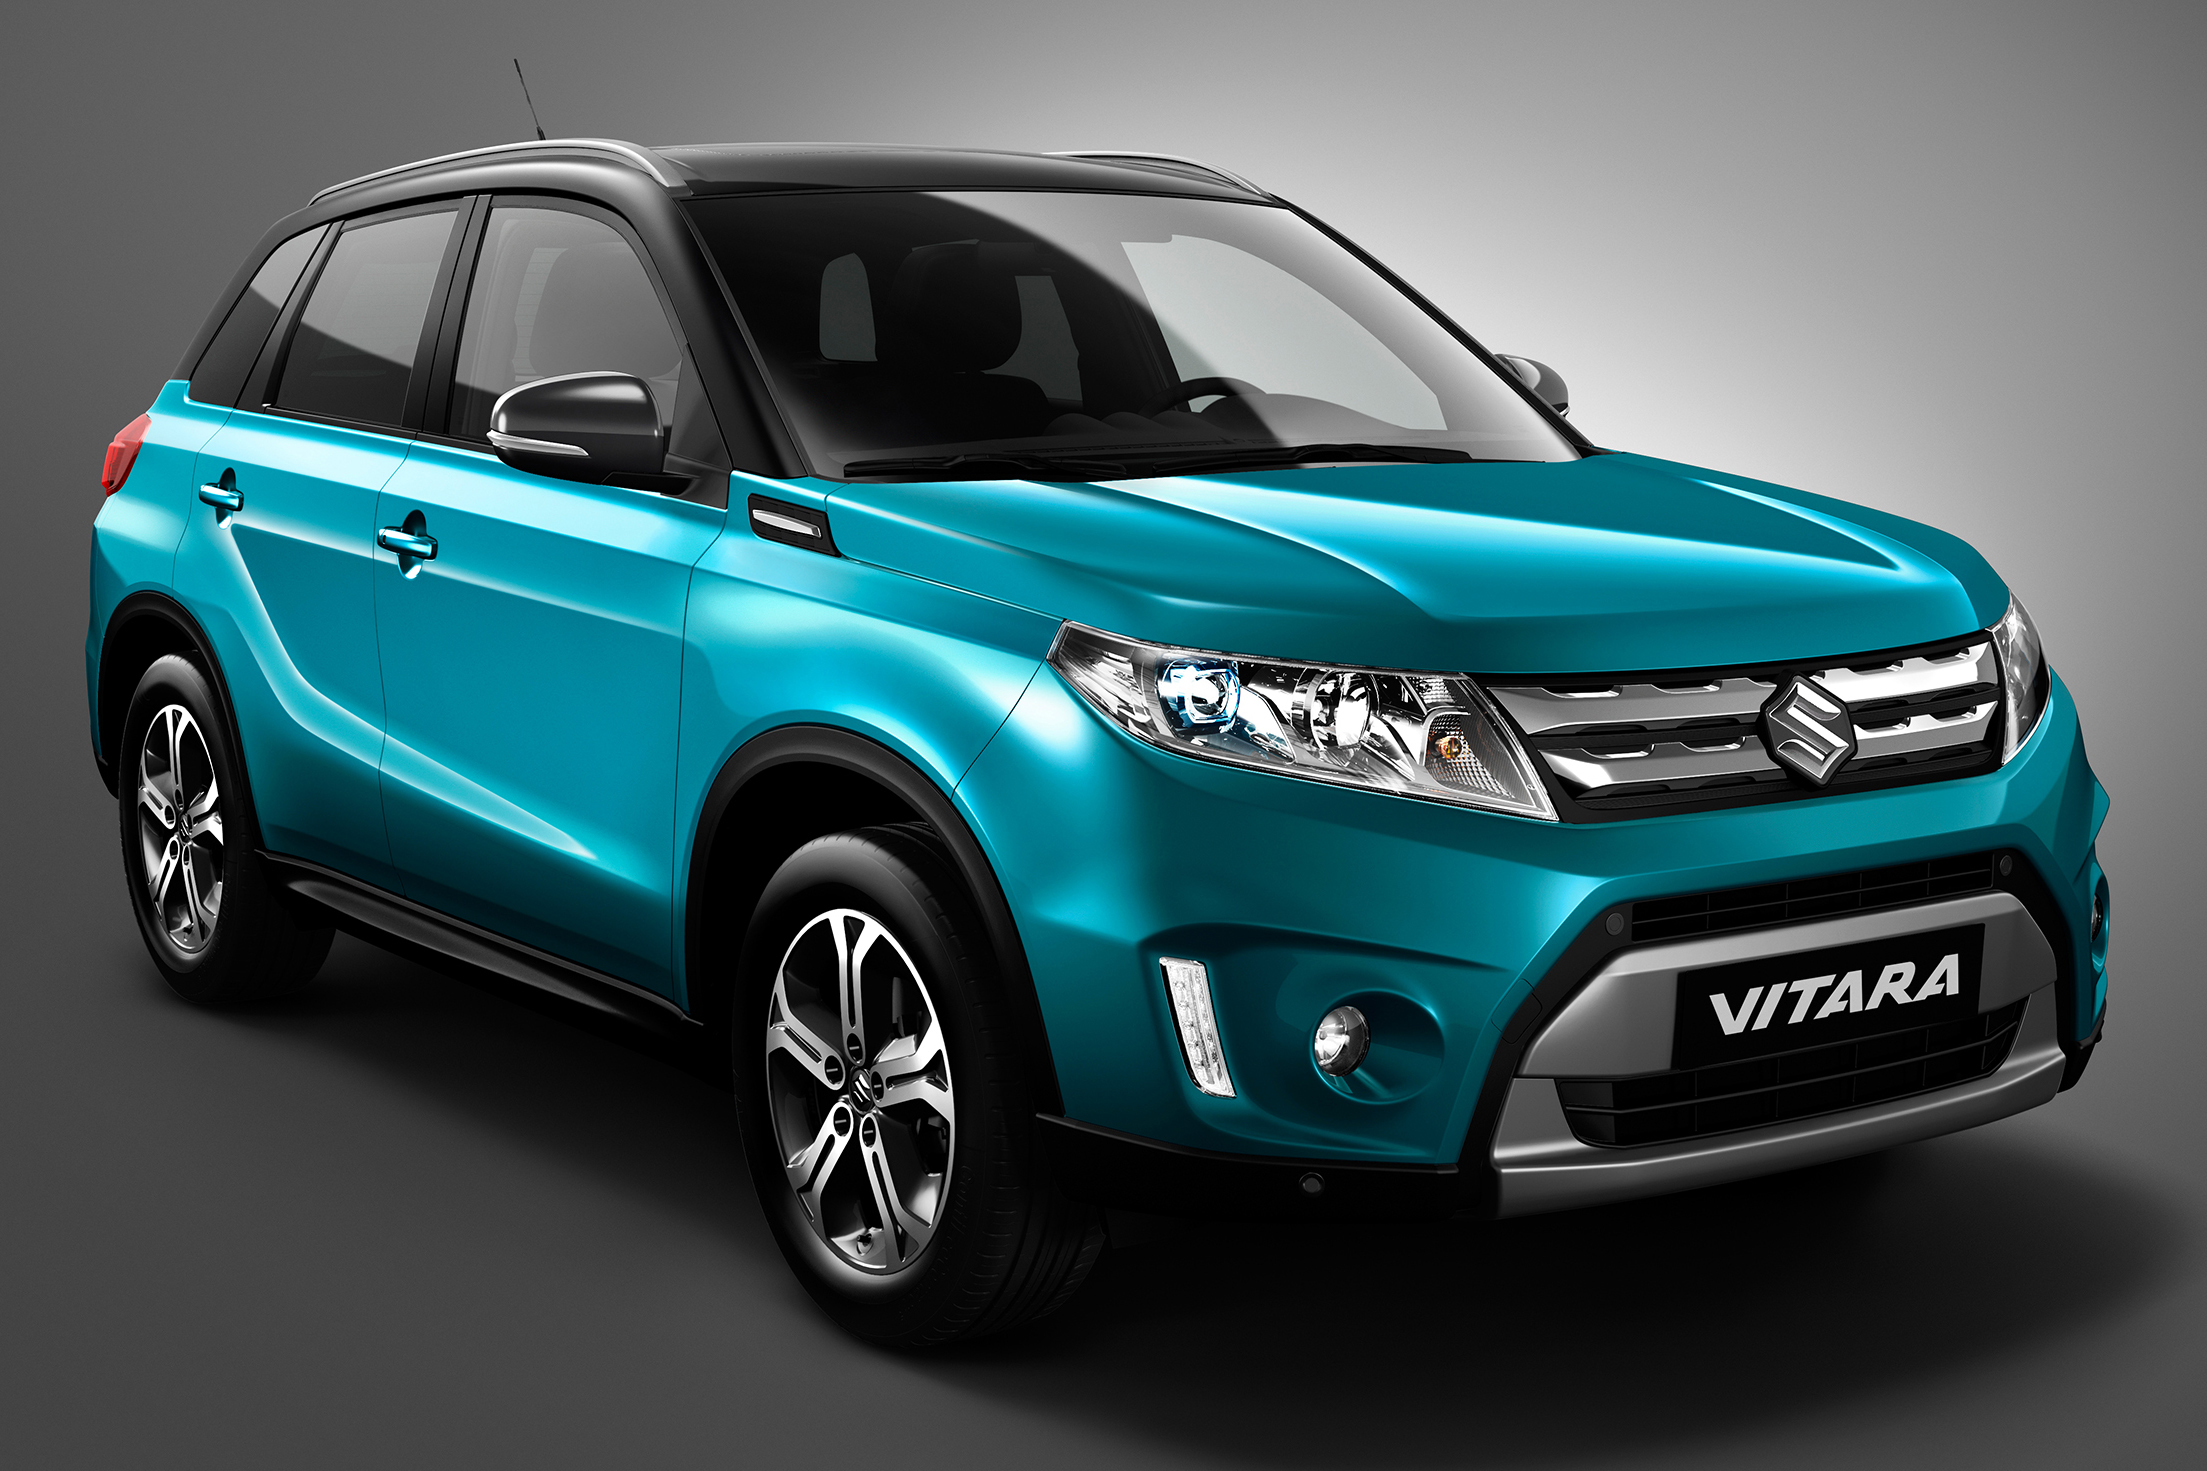 2015 suzuki vitara new small suv set for paris debut. Black Bedroom Furniture Sets. Home Design Ideas